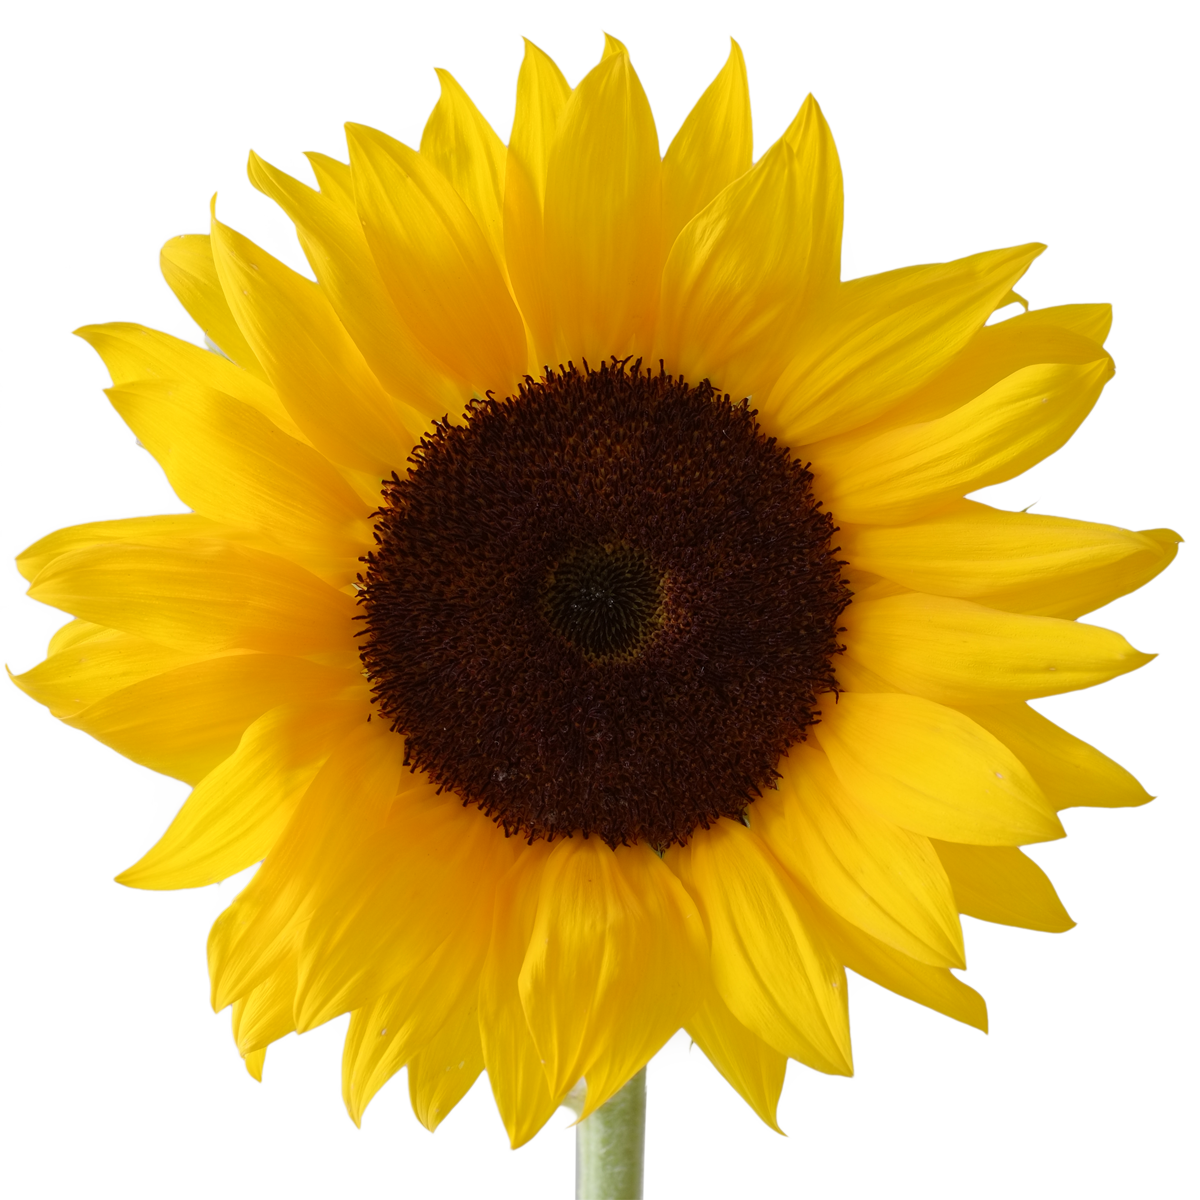 Sunflower Png Images Transparent Background: Icon Free Download Sunflower Vectors #28721